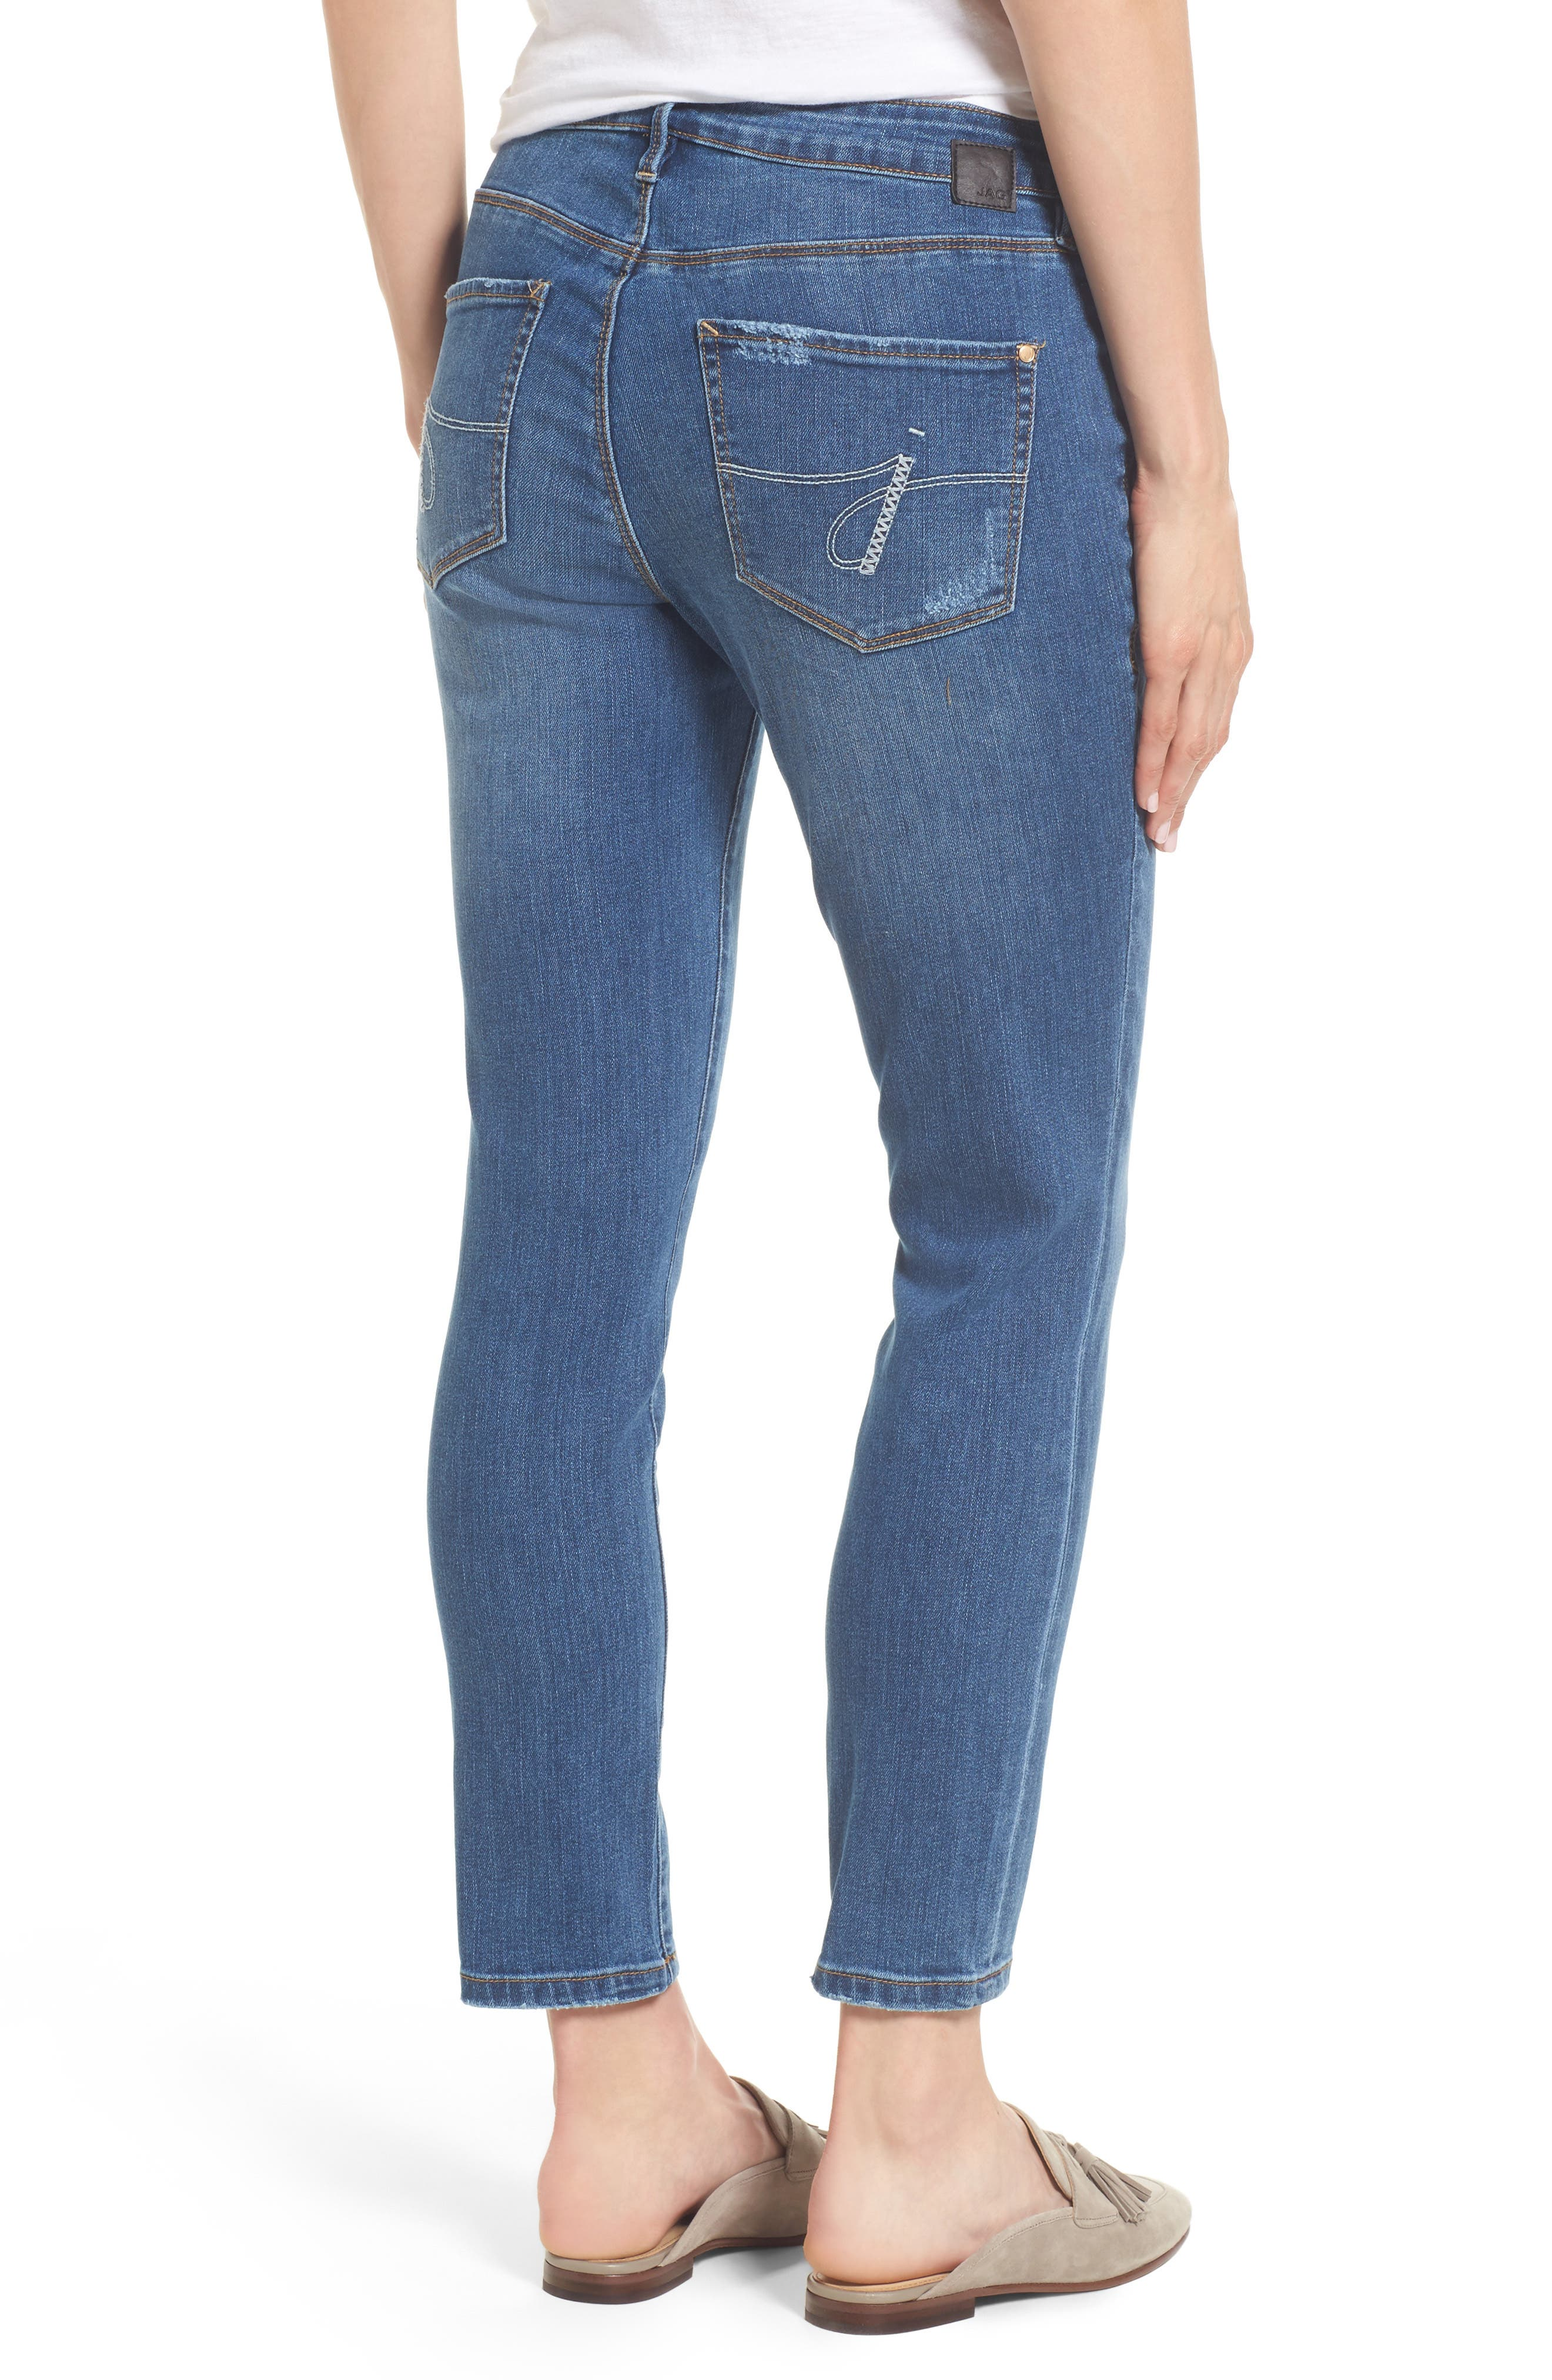 Mera Skinny Ankle Jeans,                             Alternate thumbnail 2, color,                             Mineral Wash